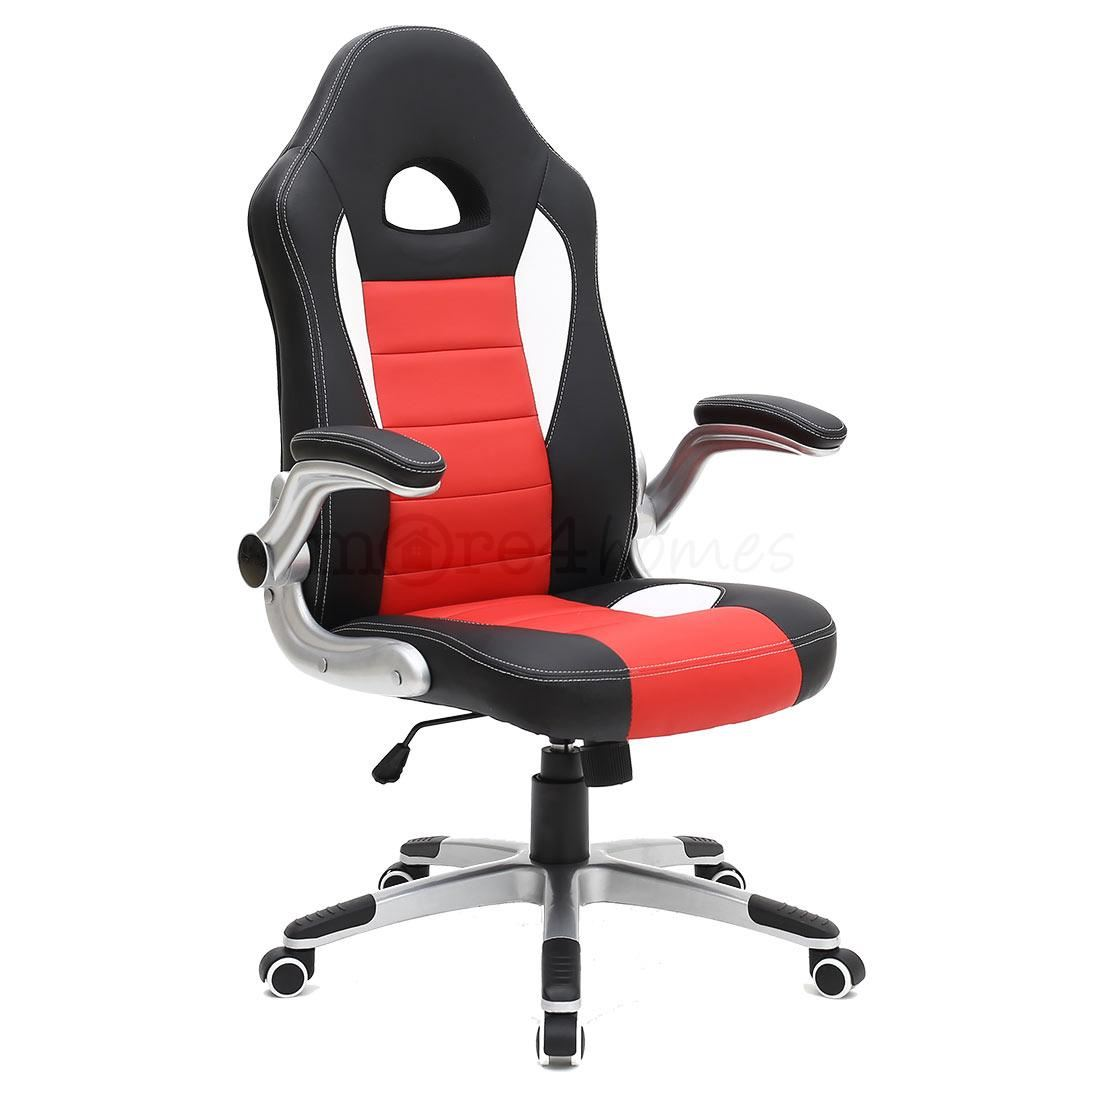 cruz sport racing car office chair leather adjustable